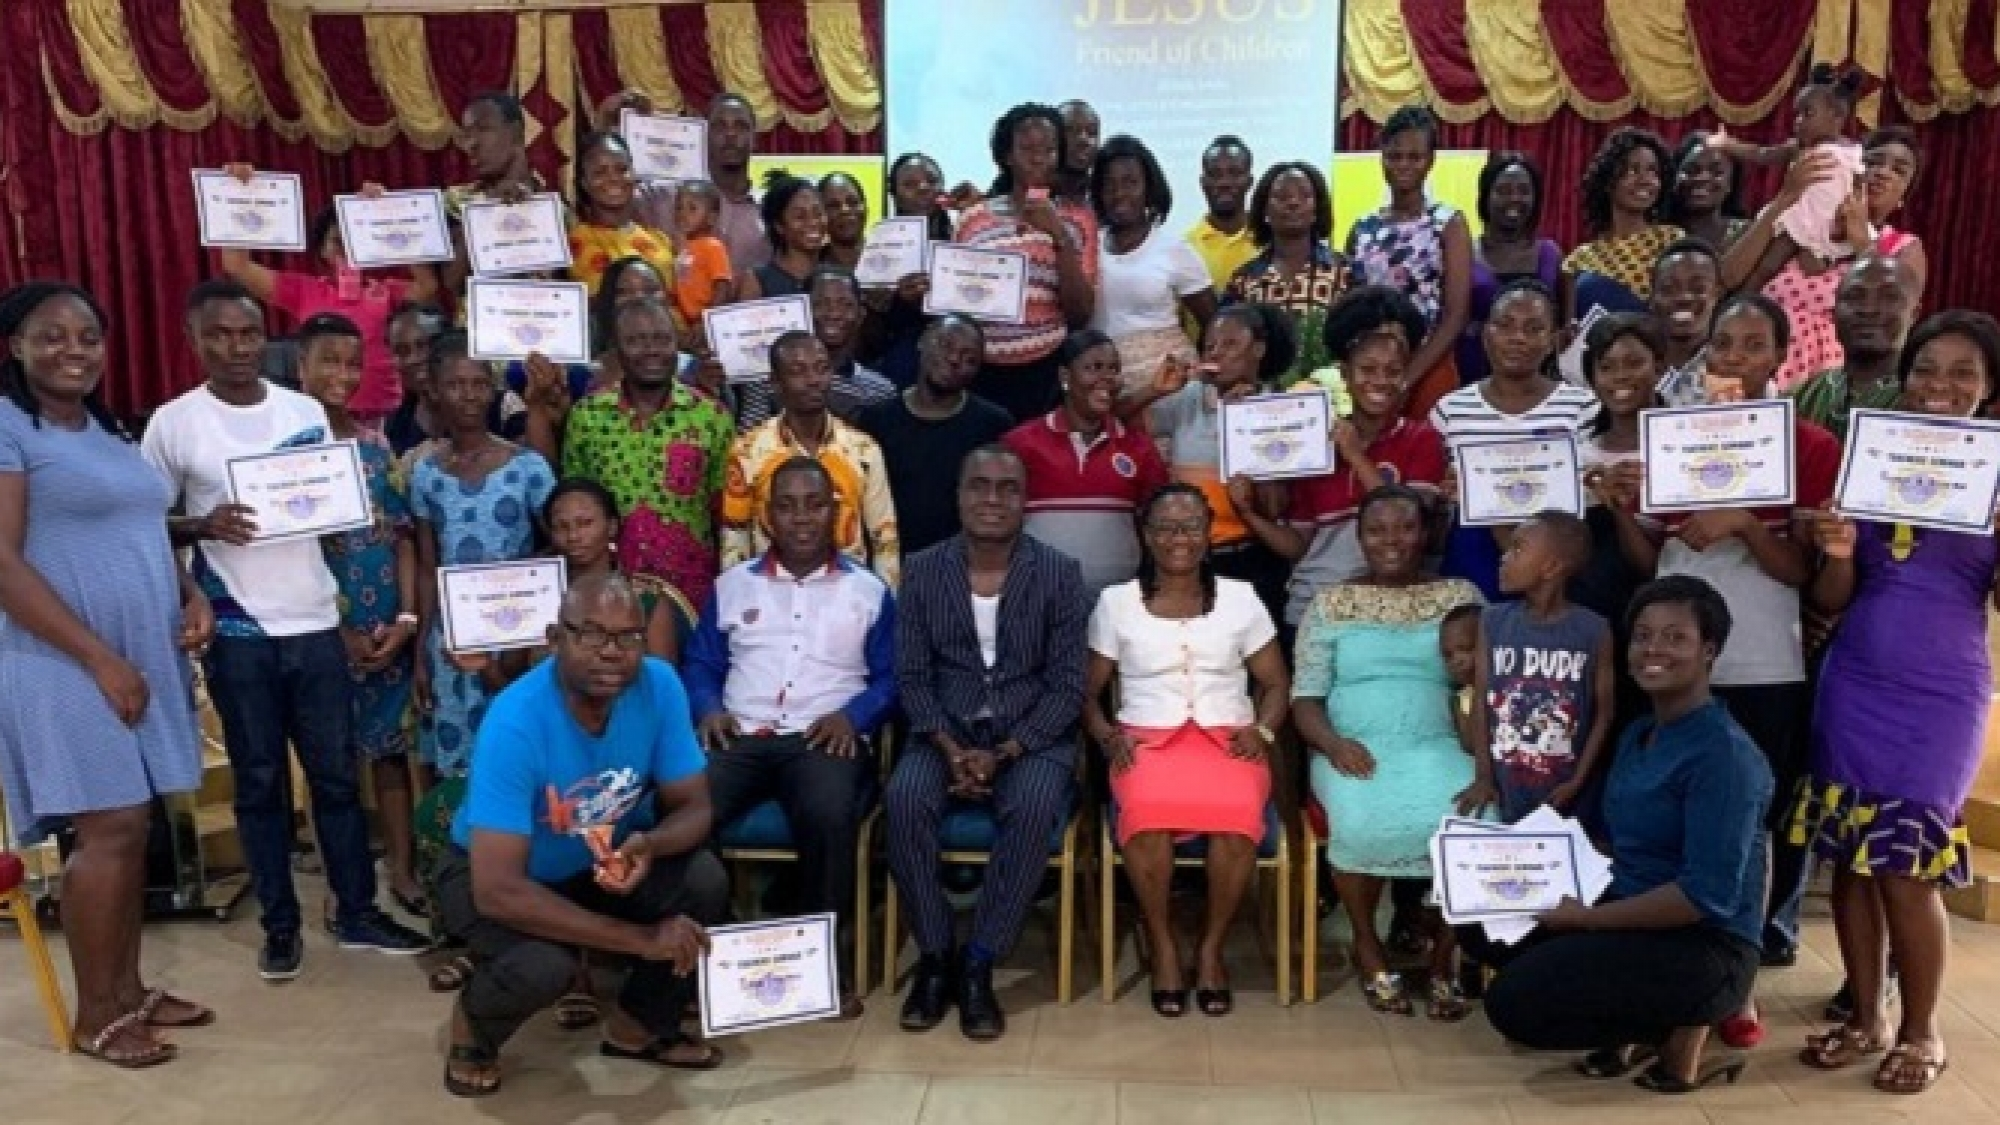 Children's Ministry Workers Undergo Training